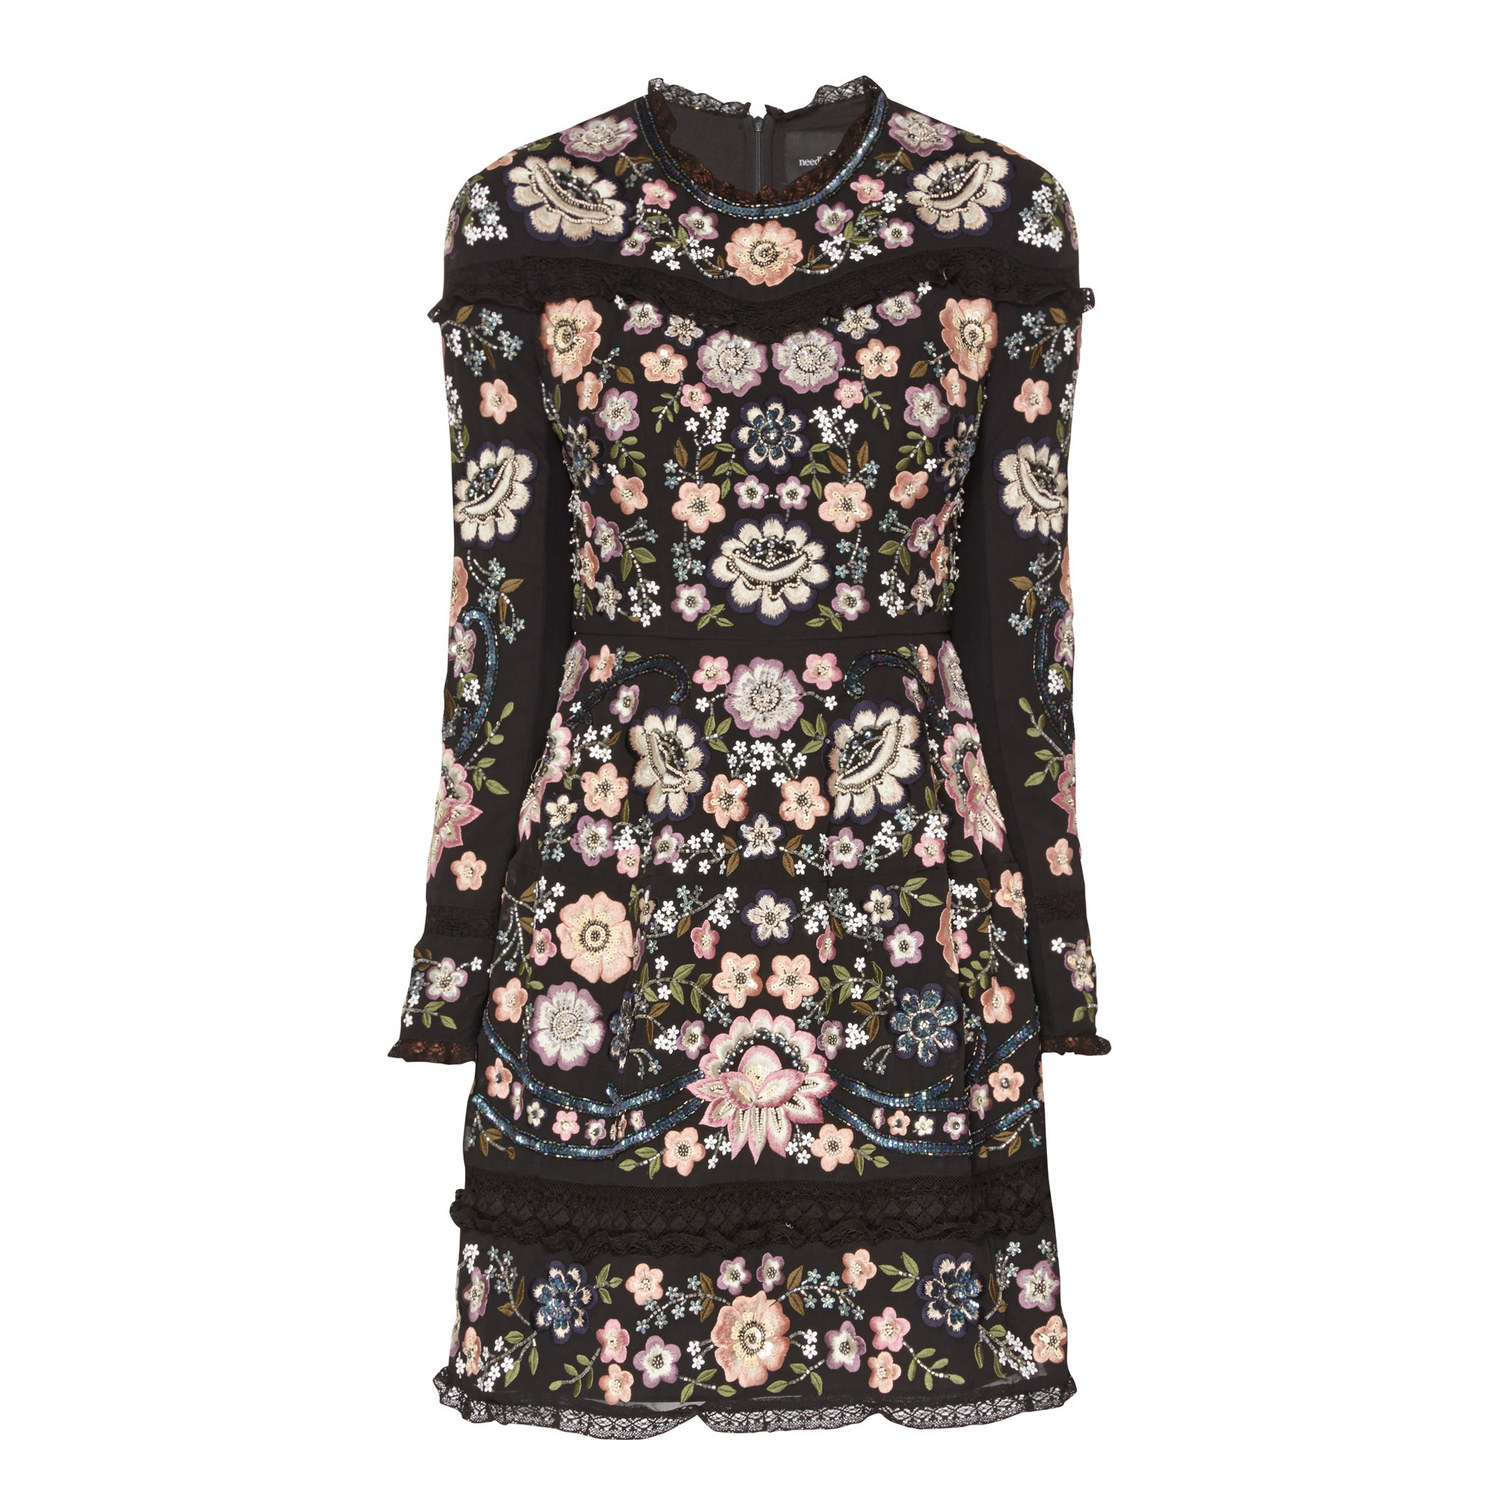 Embroidered Crew Neck Dress; Needle and Thread €415. Brown Thomas http://www.brownthomas.com/brown-thomas-navigation-catalog/embroidered-crew-neck-dress/